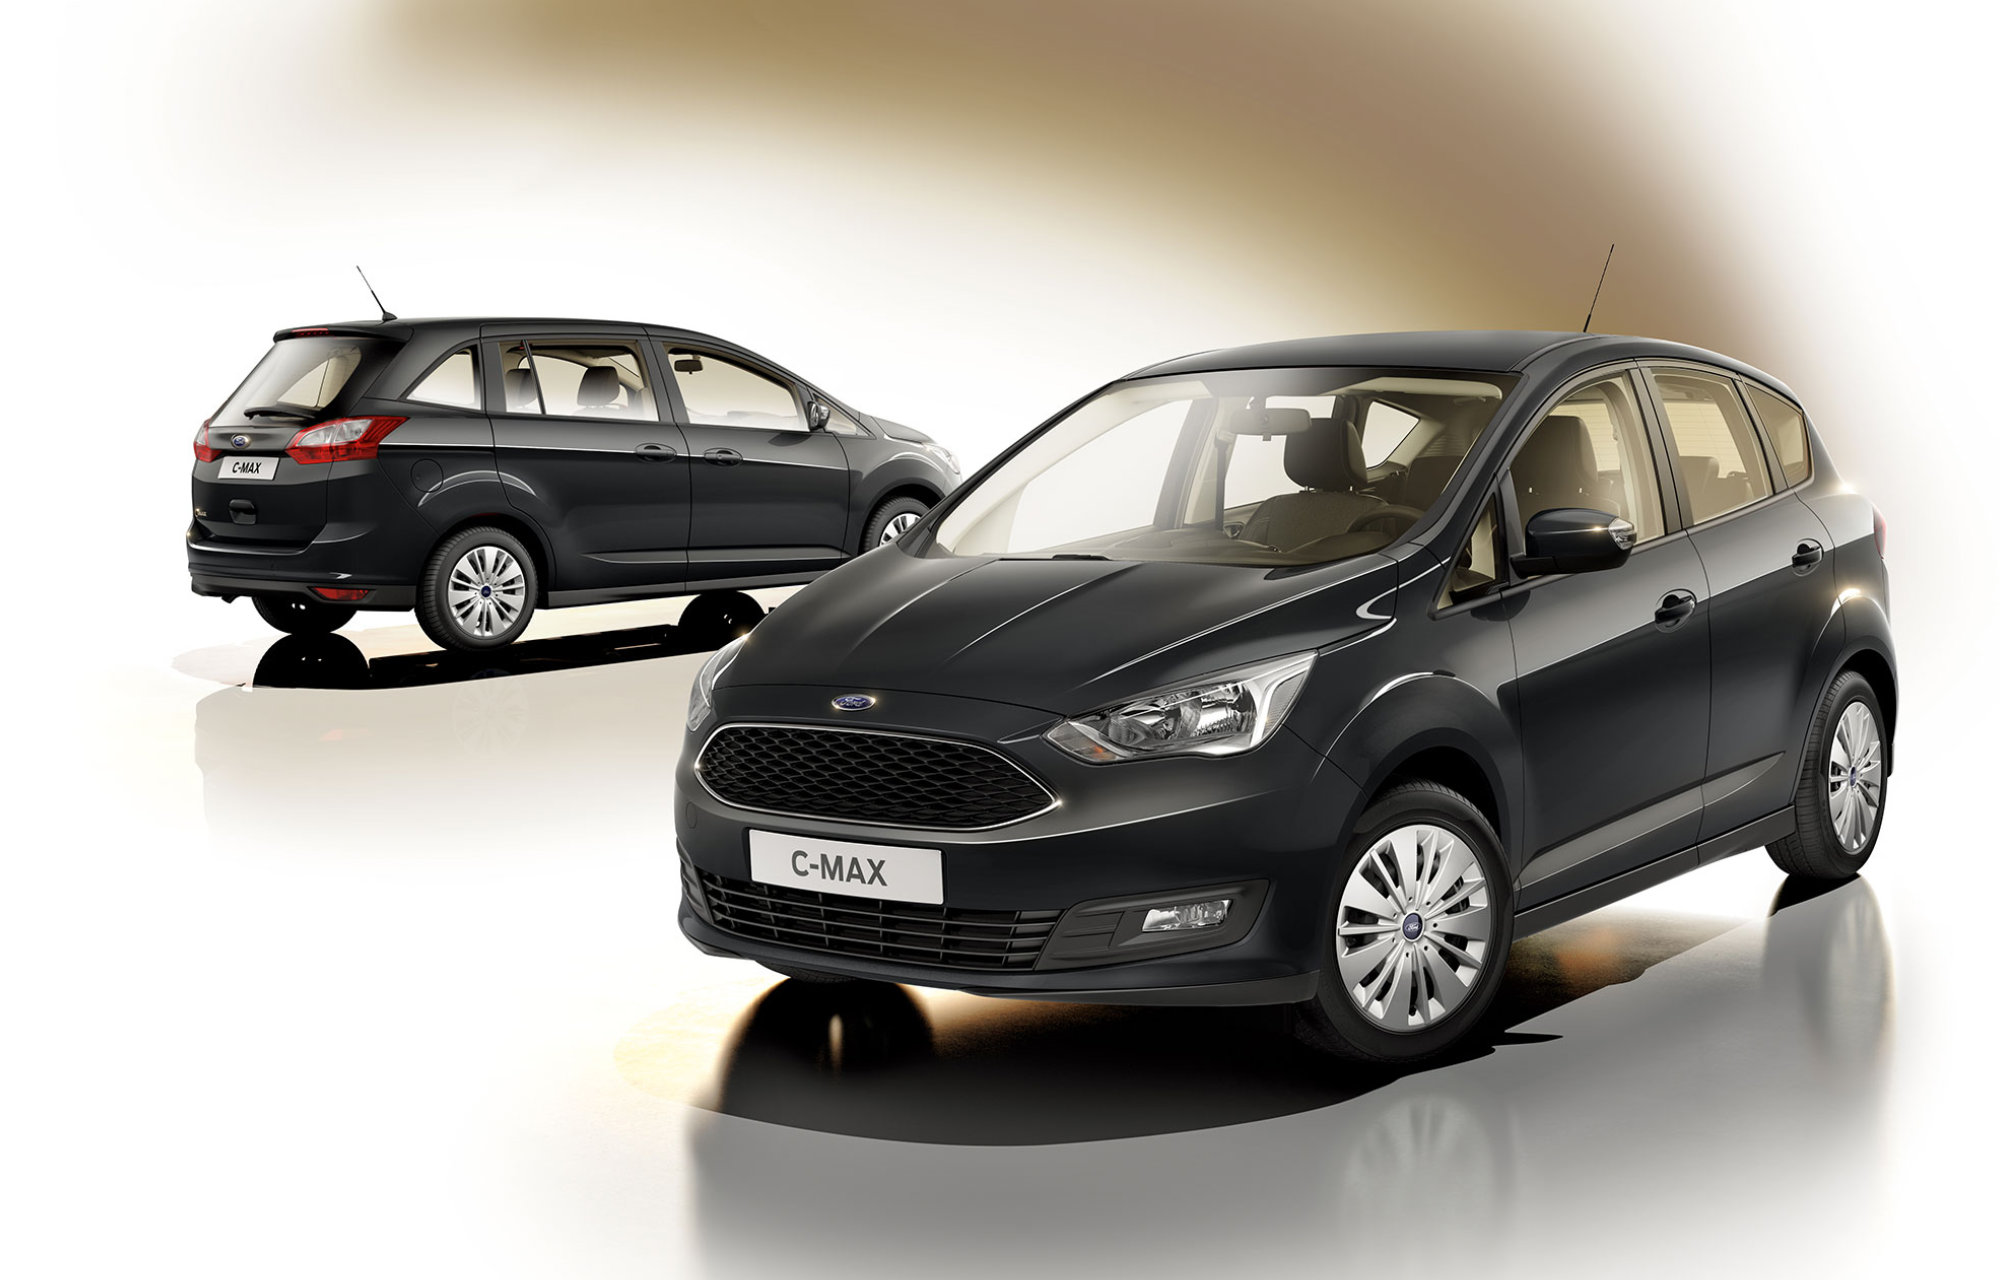 Ford C-MAX Trend, 1.0l, 125 PS/92 kW